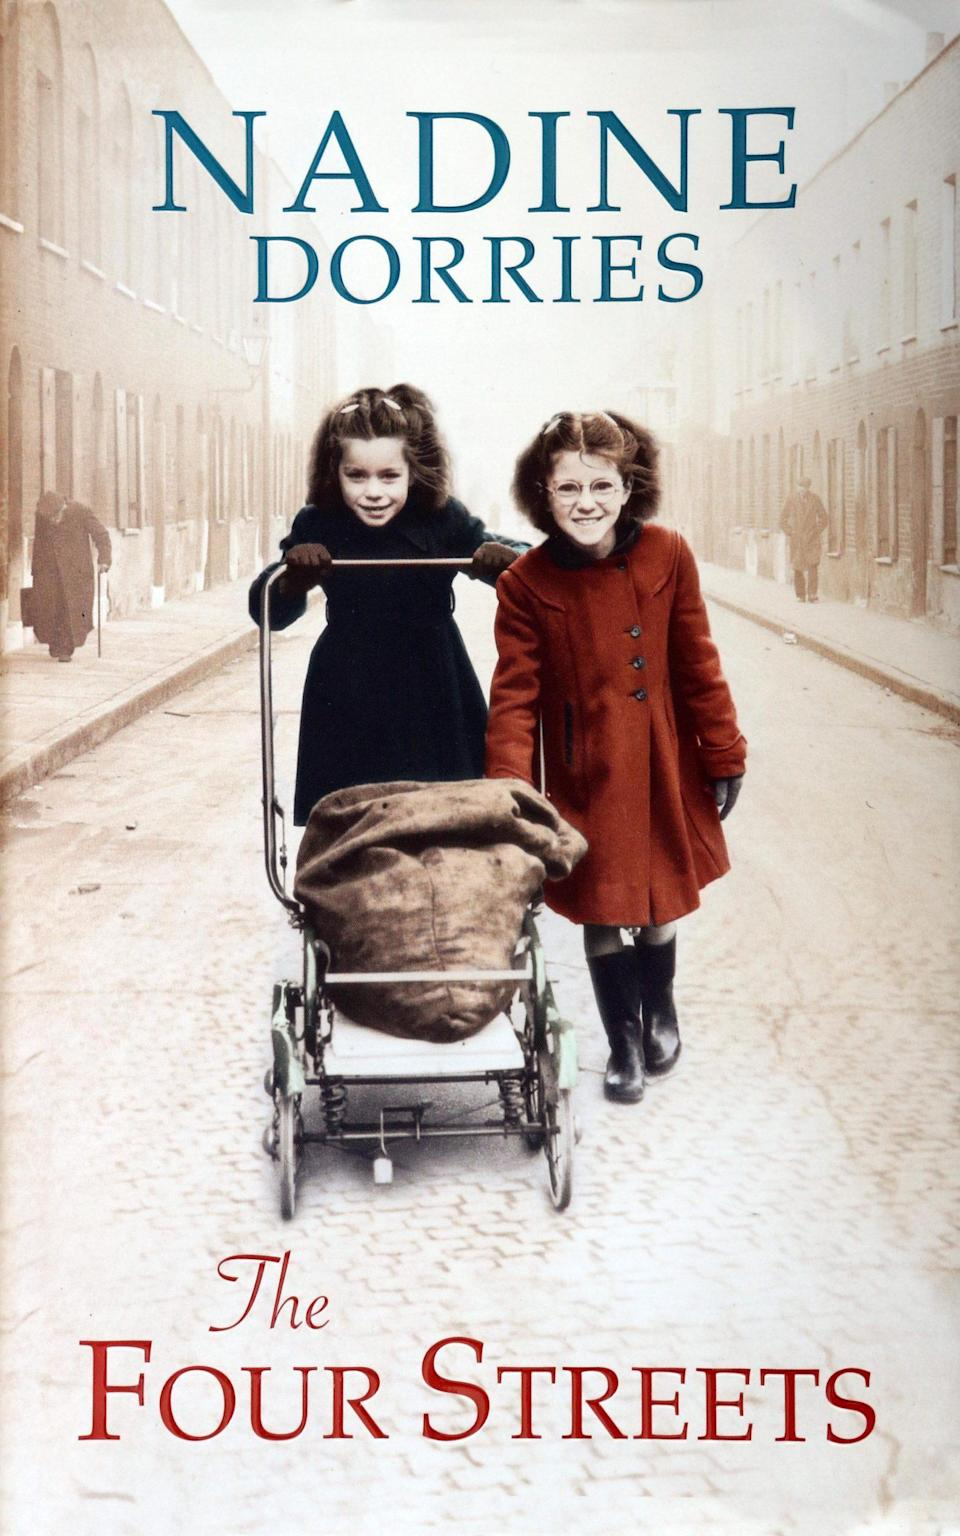 The Four Streets is one of Nadine Dorries' 'rags to riches' novels about life in Fifties' Liverpool - Richard Marsham